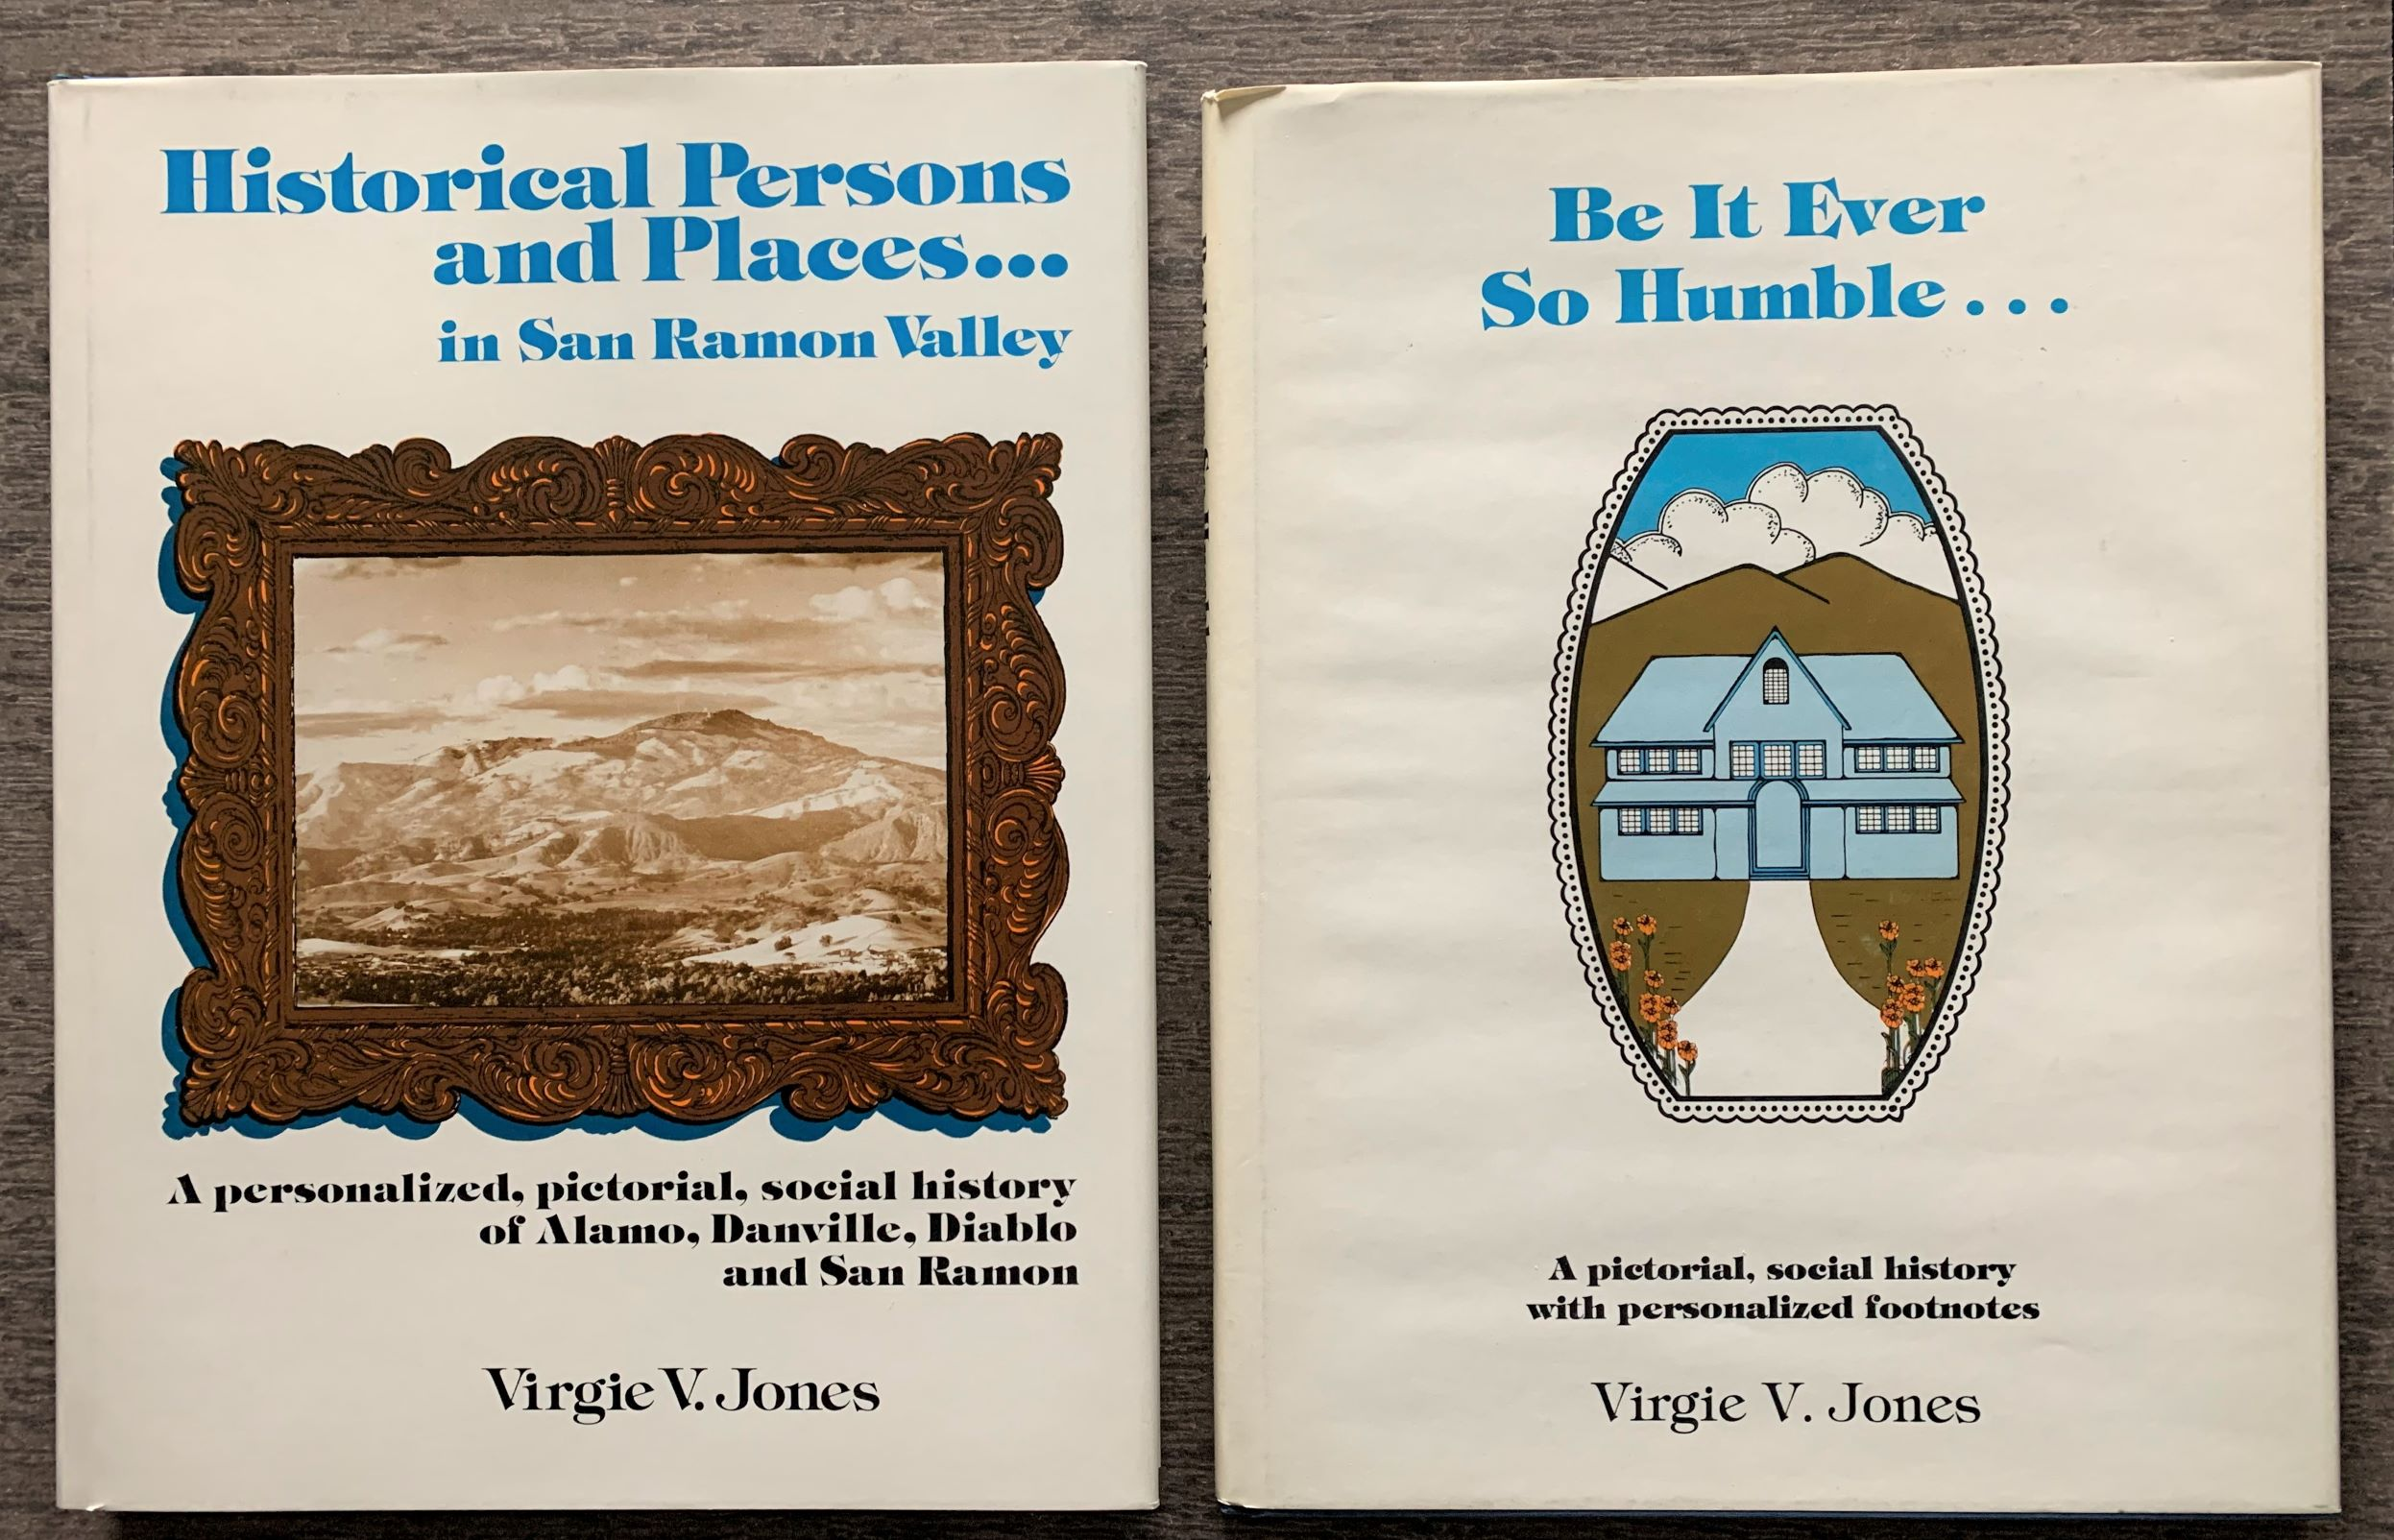 Image for [Two Titles]: Historical Persons and Places in San Ramon Valley. A Personalized, Pictorial, Social History of Alamo, Danville, Diablo and San Ramon. Volume Two. [Together With]  Be It Ever So Humble, A pictorial, social history with personalized footnotes.